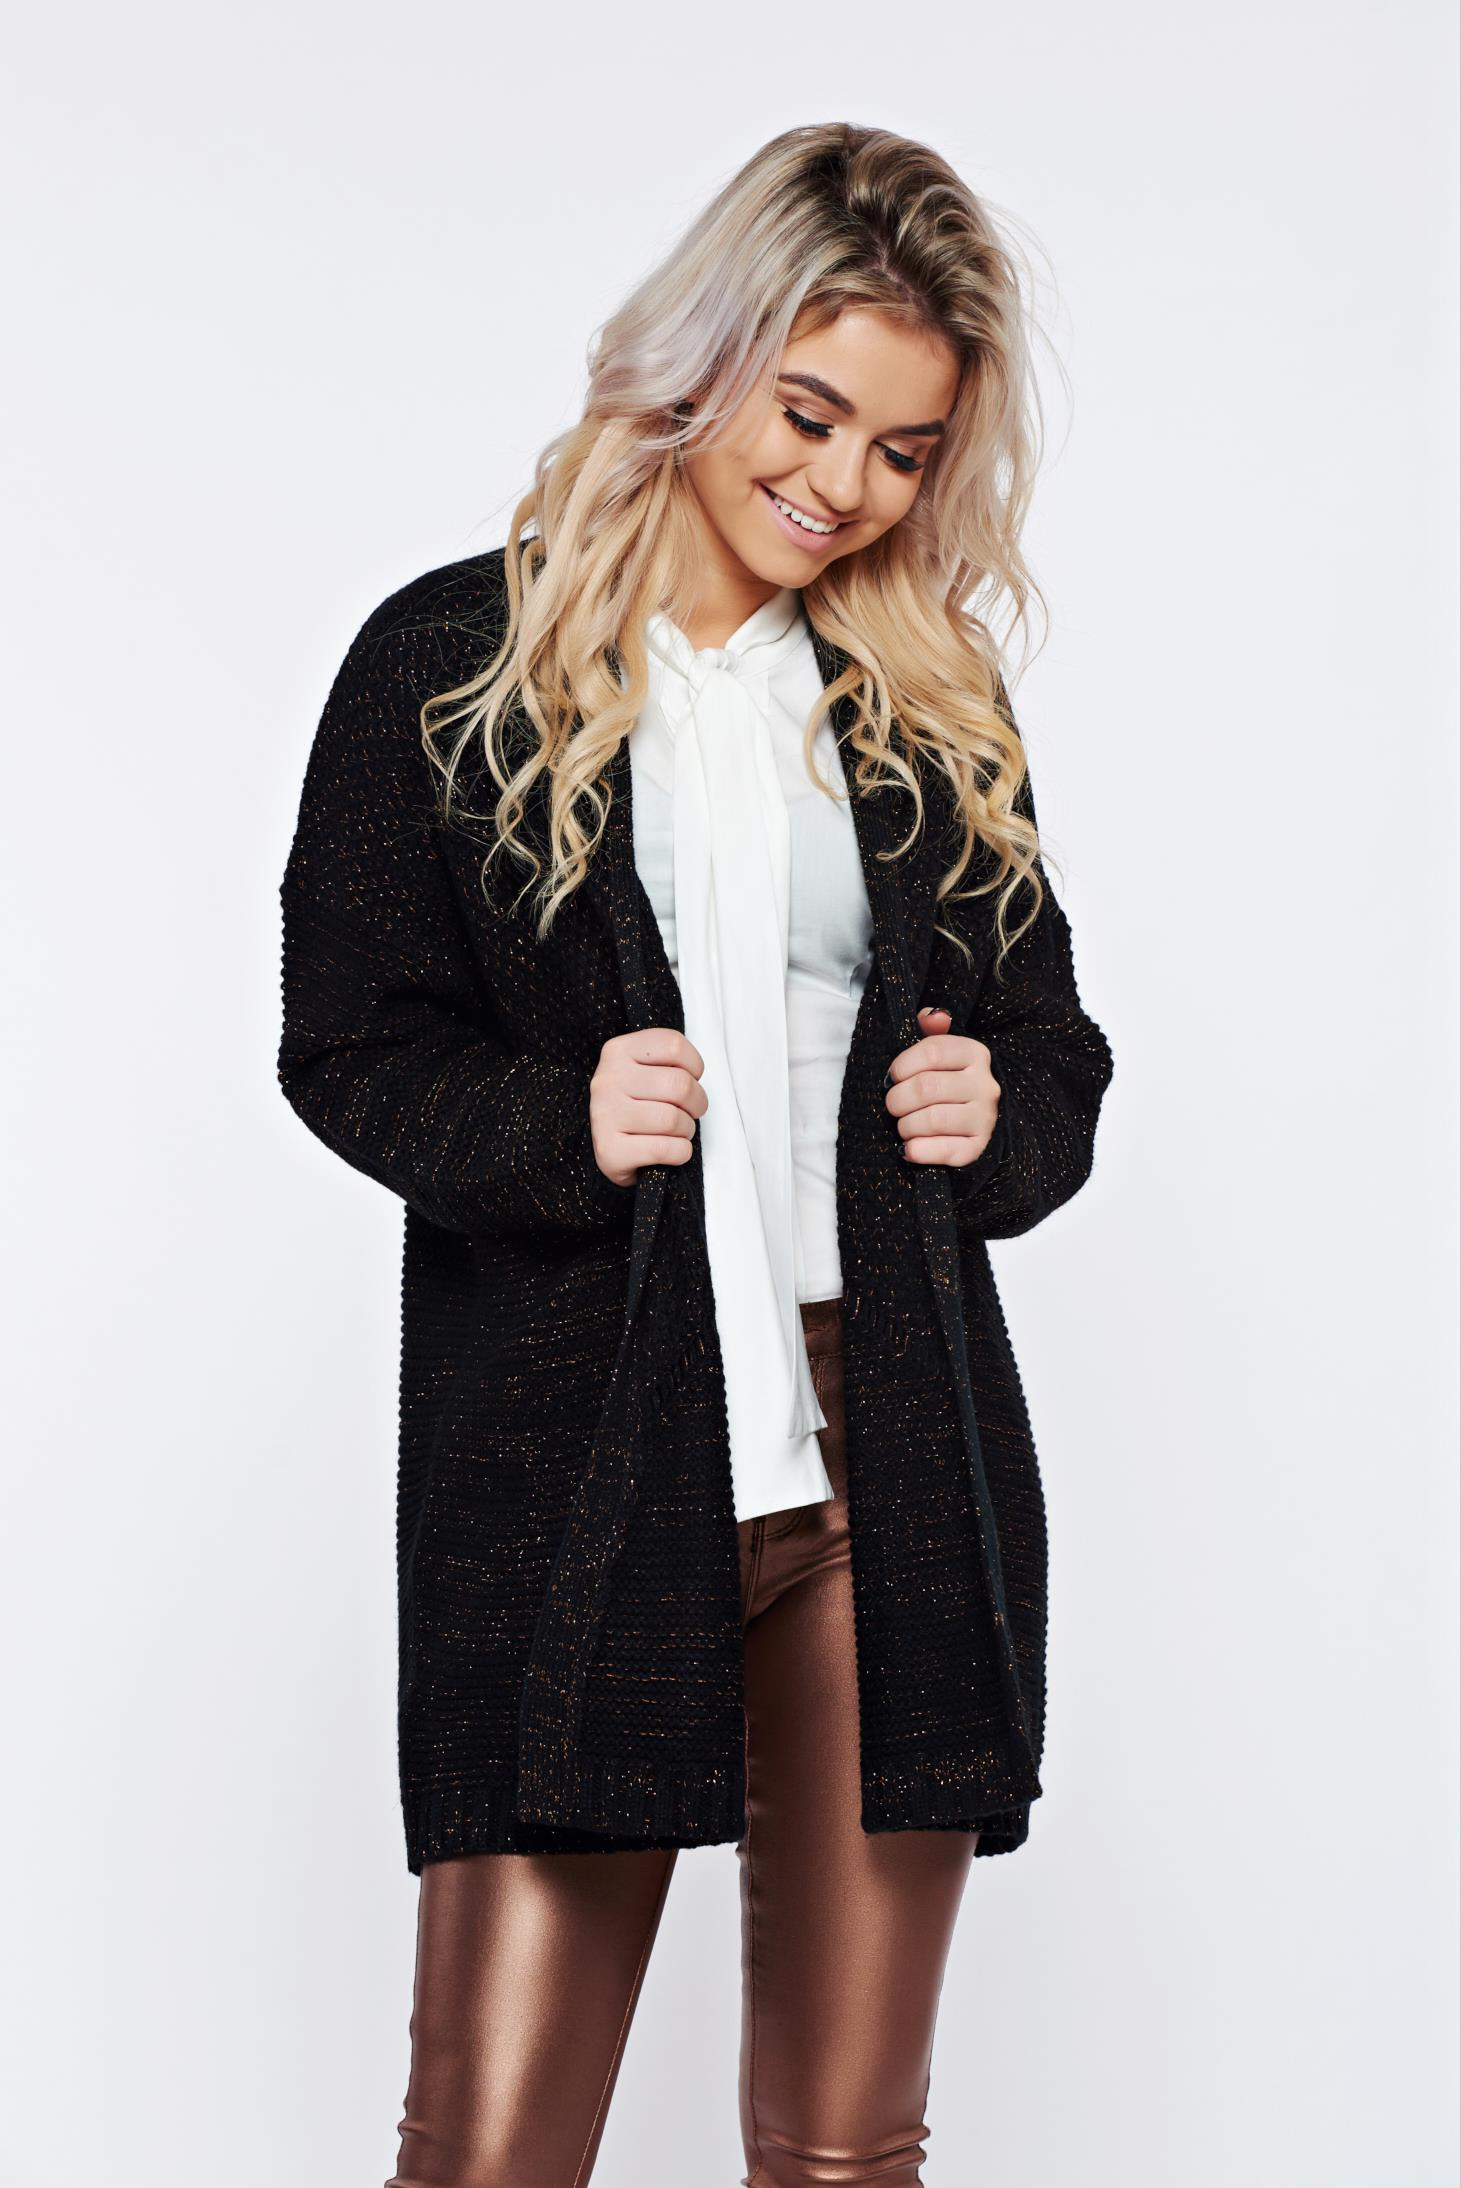 Cardigan Top Secret S025866 Black